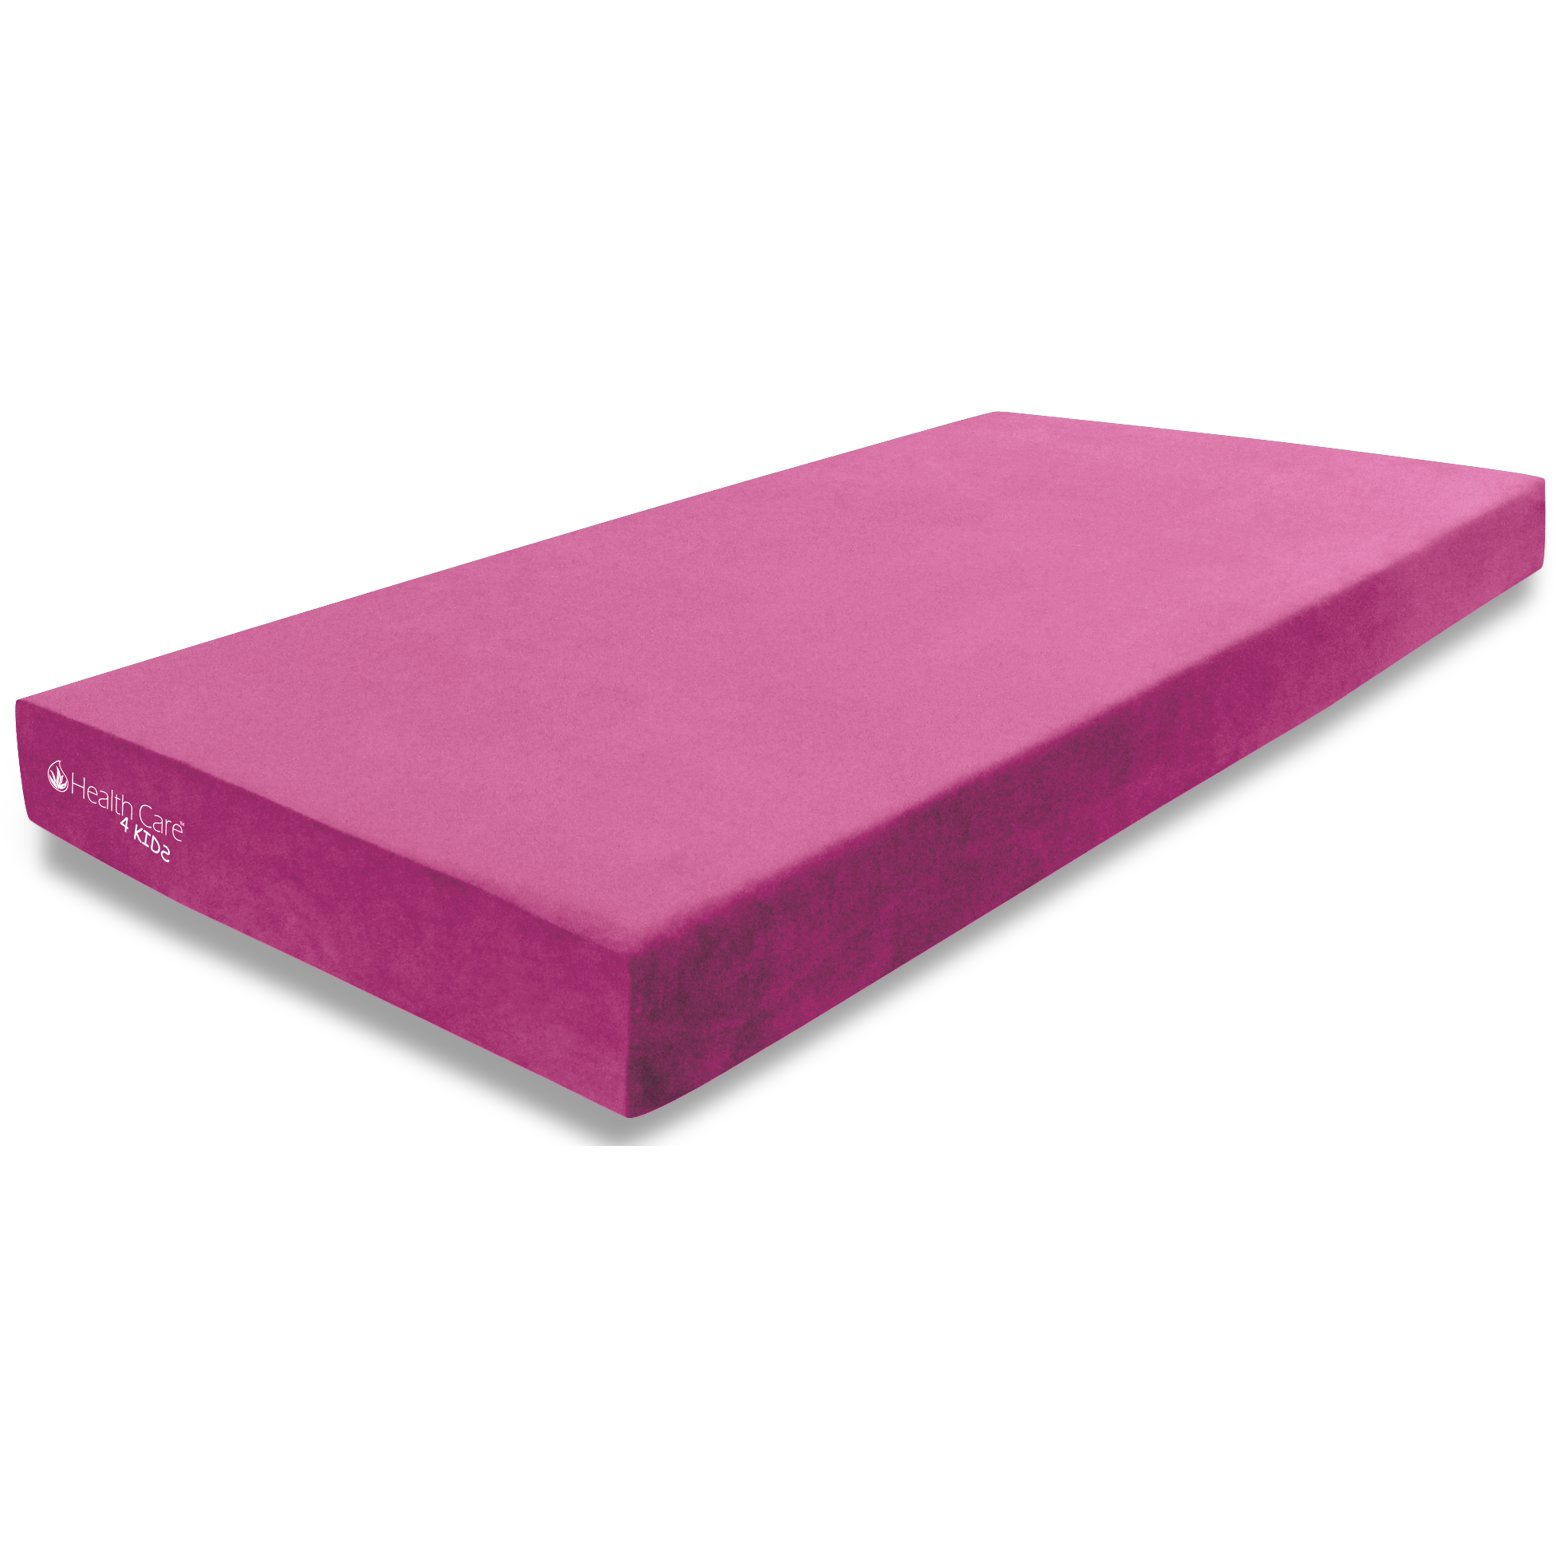 Health Care Pink Memory Foam Twin Mattress And Pillow 4 Kids Dream Rc Willey Furniture Store